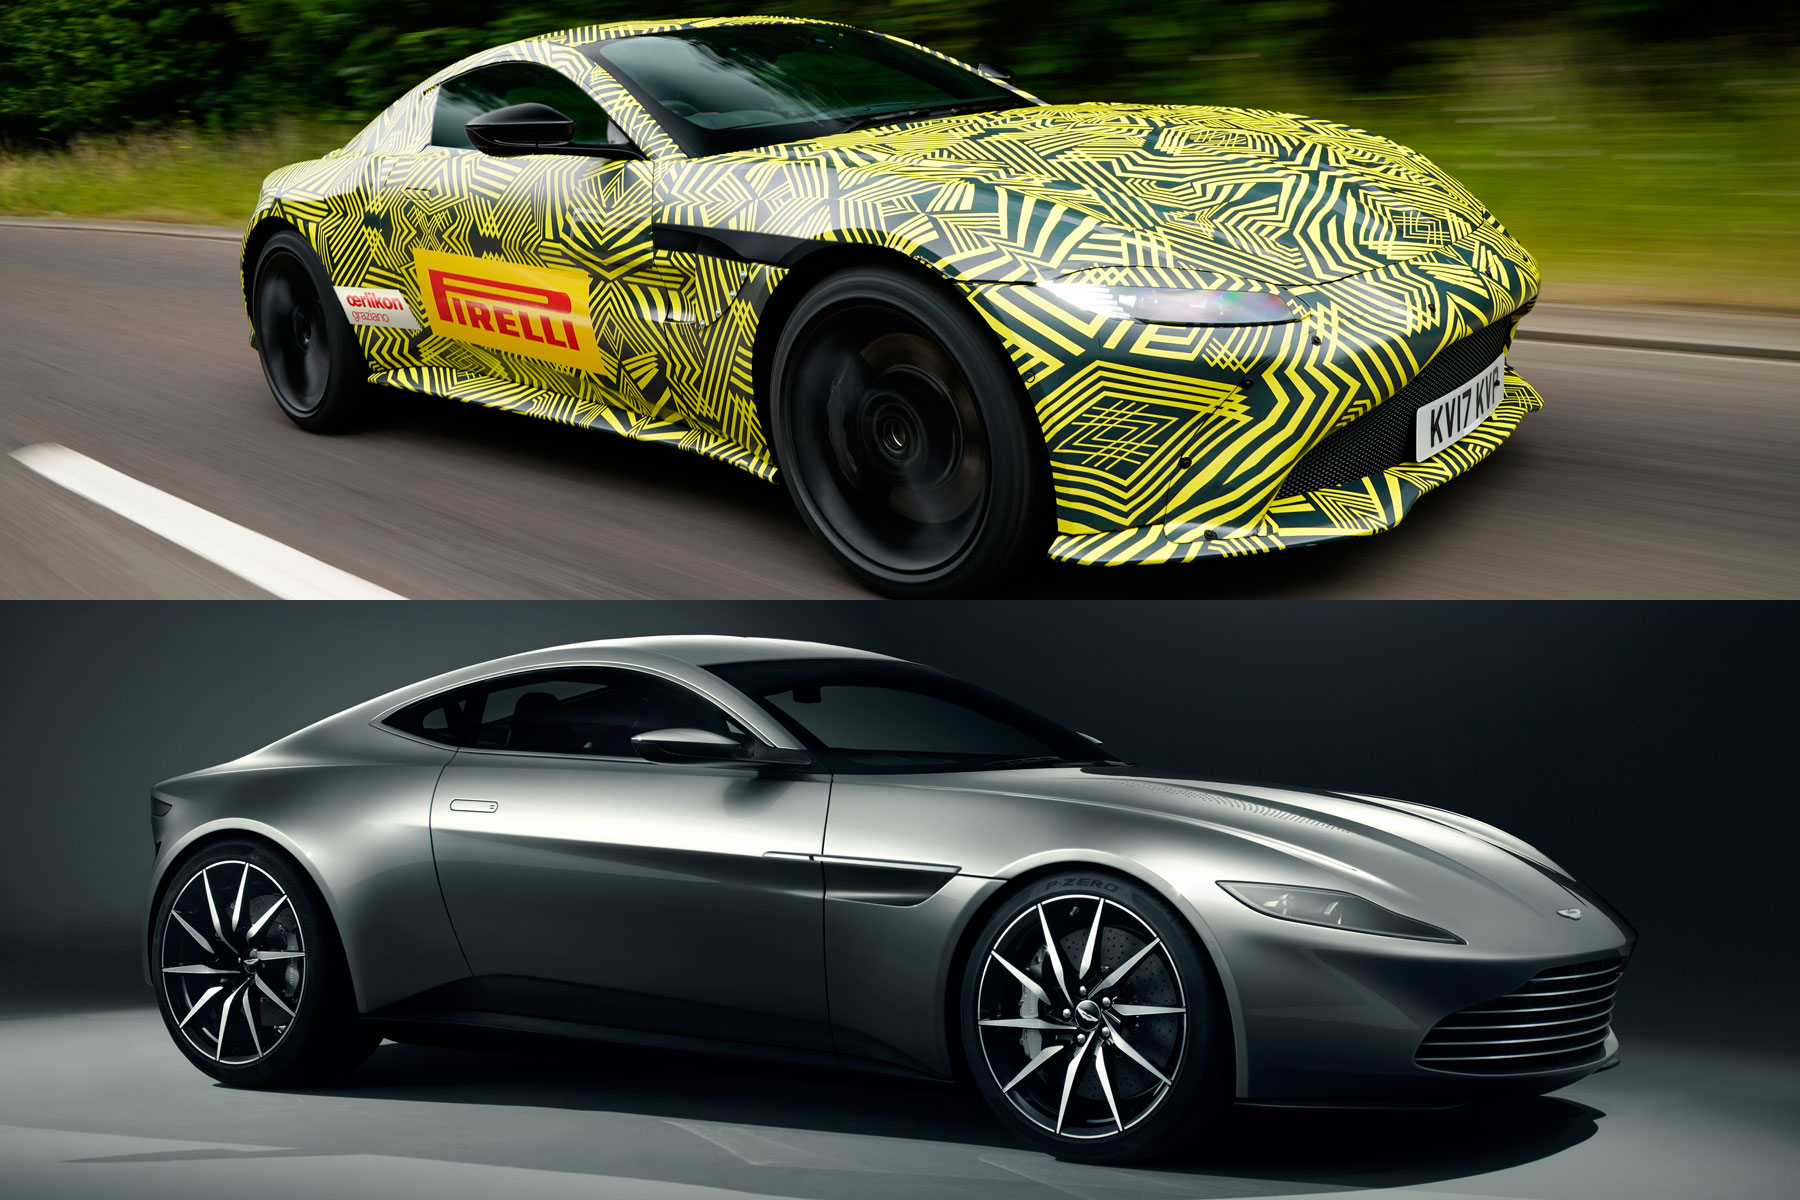 2018 aston martin vantage the james bond car coming soon motoring research. Black Bedroom Furniture Sets. Home Design Ideas